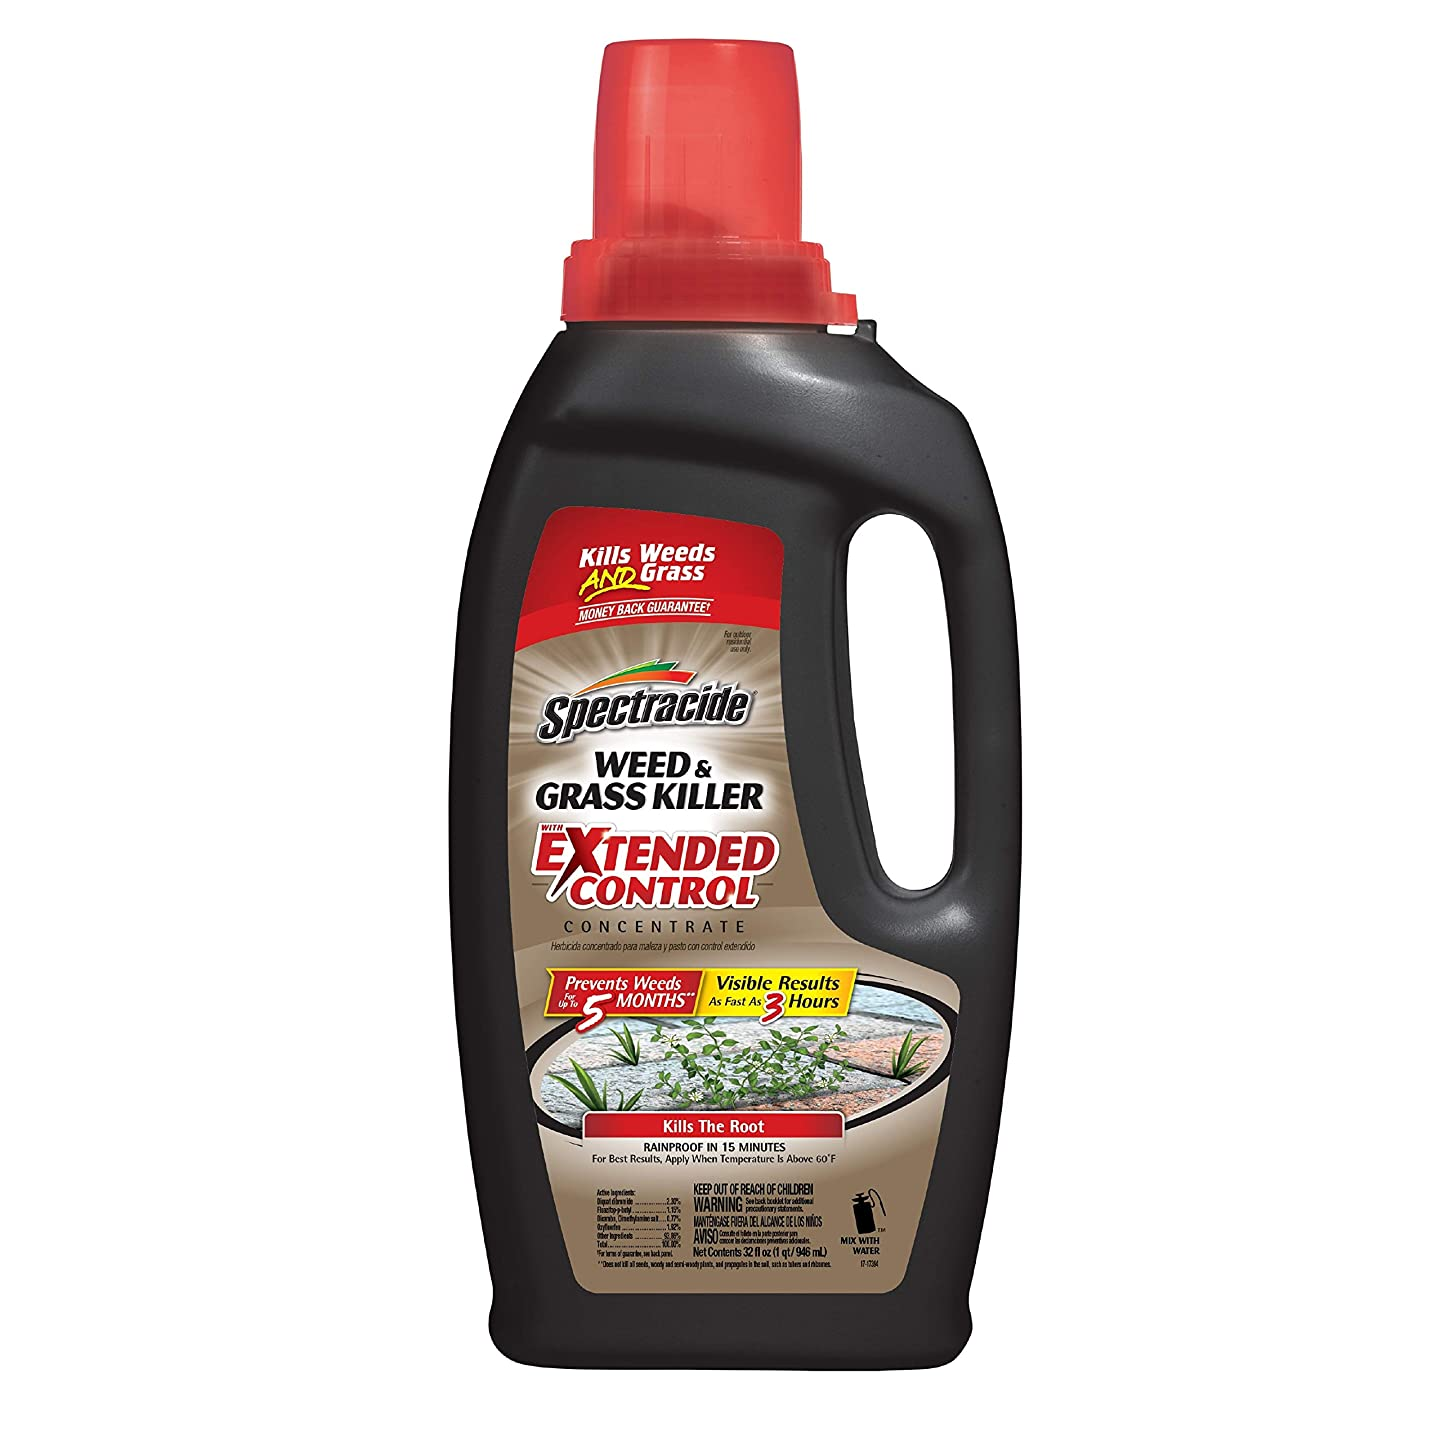 Spectracide Weed & Grass Killer with Extended Control Concentrate 32 oz., 1-PK